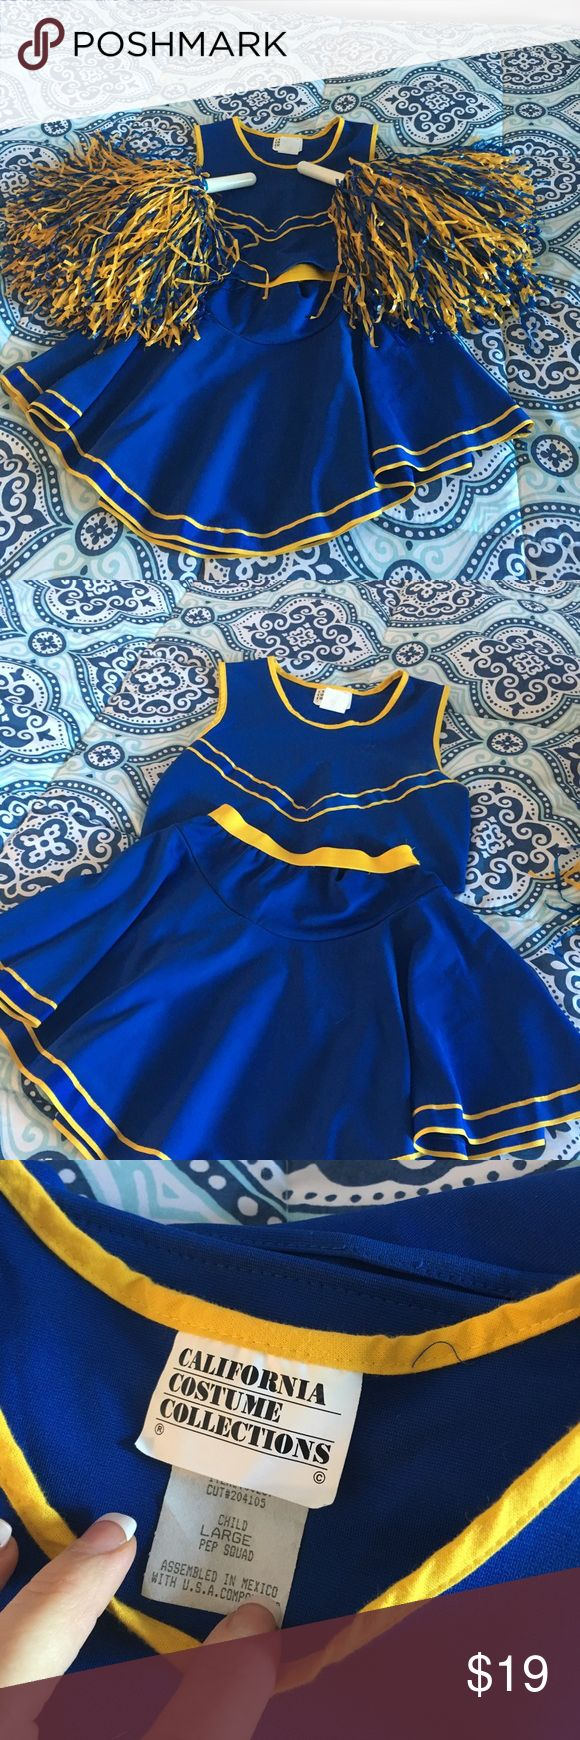 Cheerleaders Costume Beautiful Cheerleader Costume. It's Size Large In Child. In great condition Costumes Halloween